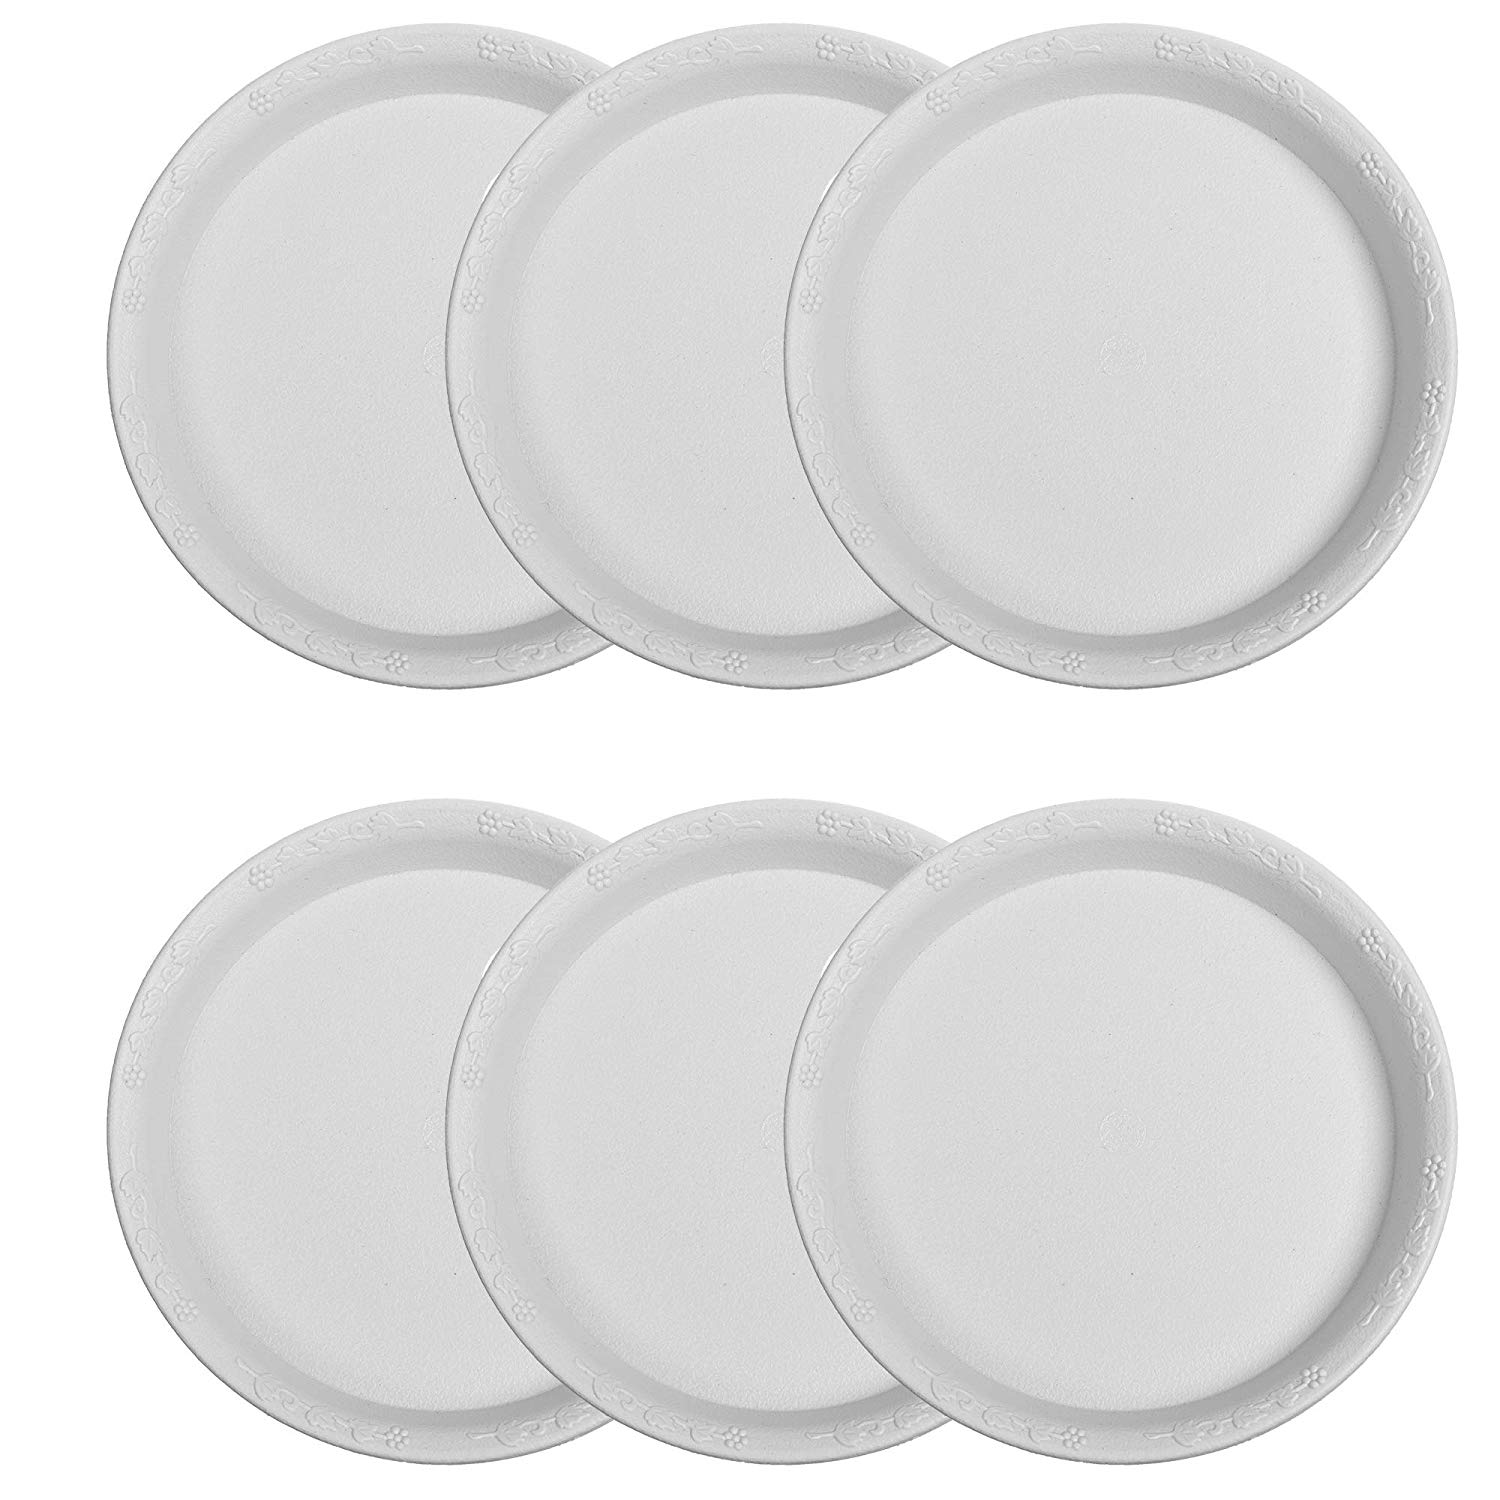 CM Cosmos Pack of 6 PCS Plant Pot Saucers for Flower and Household Plants, 9 Inches (White Color)